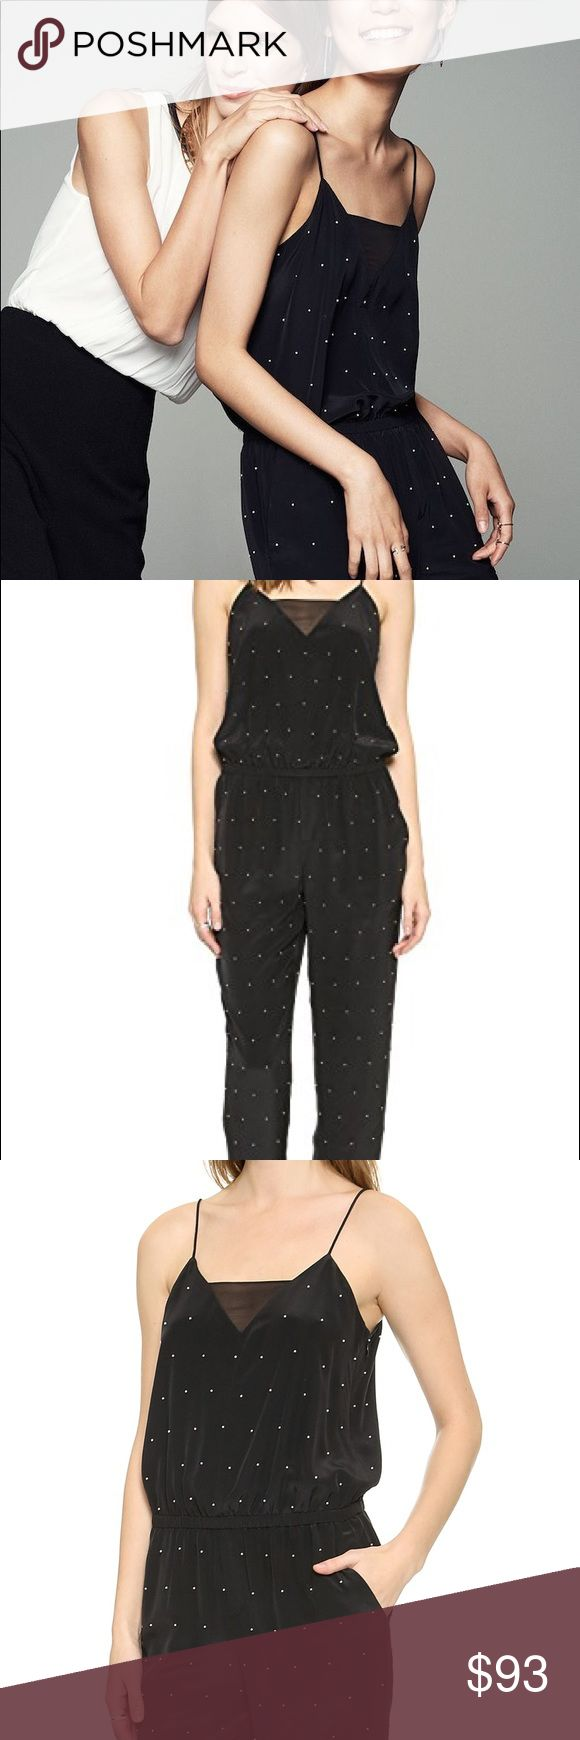 Club Monaco Leila Jumpsuit Black with Pearls Brand New with tags.  Imitation pearls lend an opulent look to this slouchy Club Monaco jumpsuit. A sheer panel accents the V neckline, and smocked elastic defines the waist. Spaghetti straps. Slant hip pockets. Hidden side zip. Lined.  Fabric: Plain weave silk. Shell: 100% silk. Lining: 100% polyester. Dry clean. Club Monaco Pants Jumpsuits & Rompers